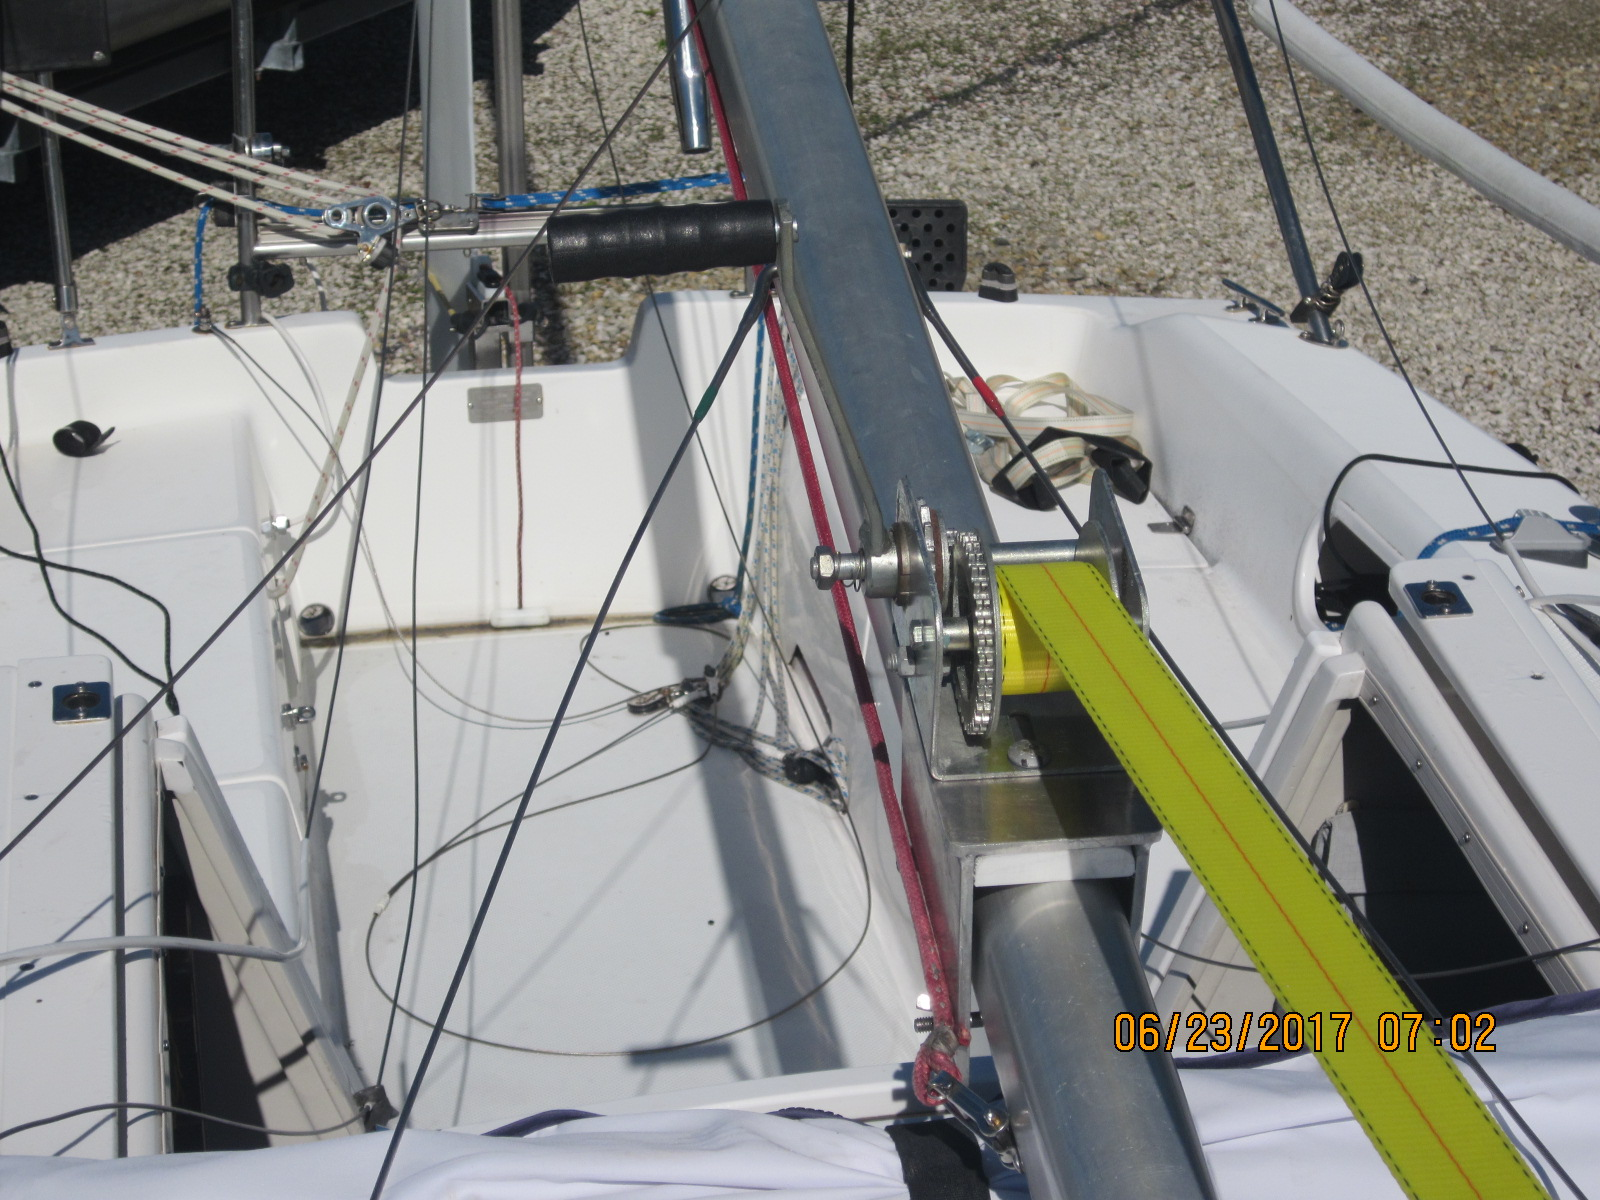 Rigging, Mast Raising, & a False Start | Sailboat Owners Forums